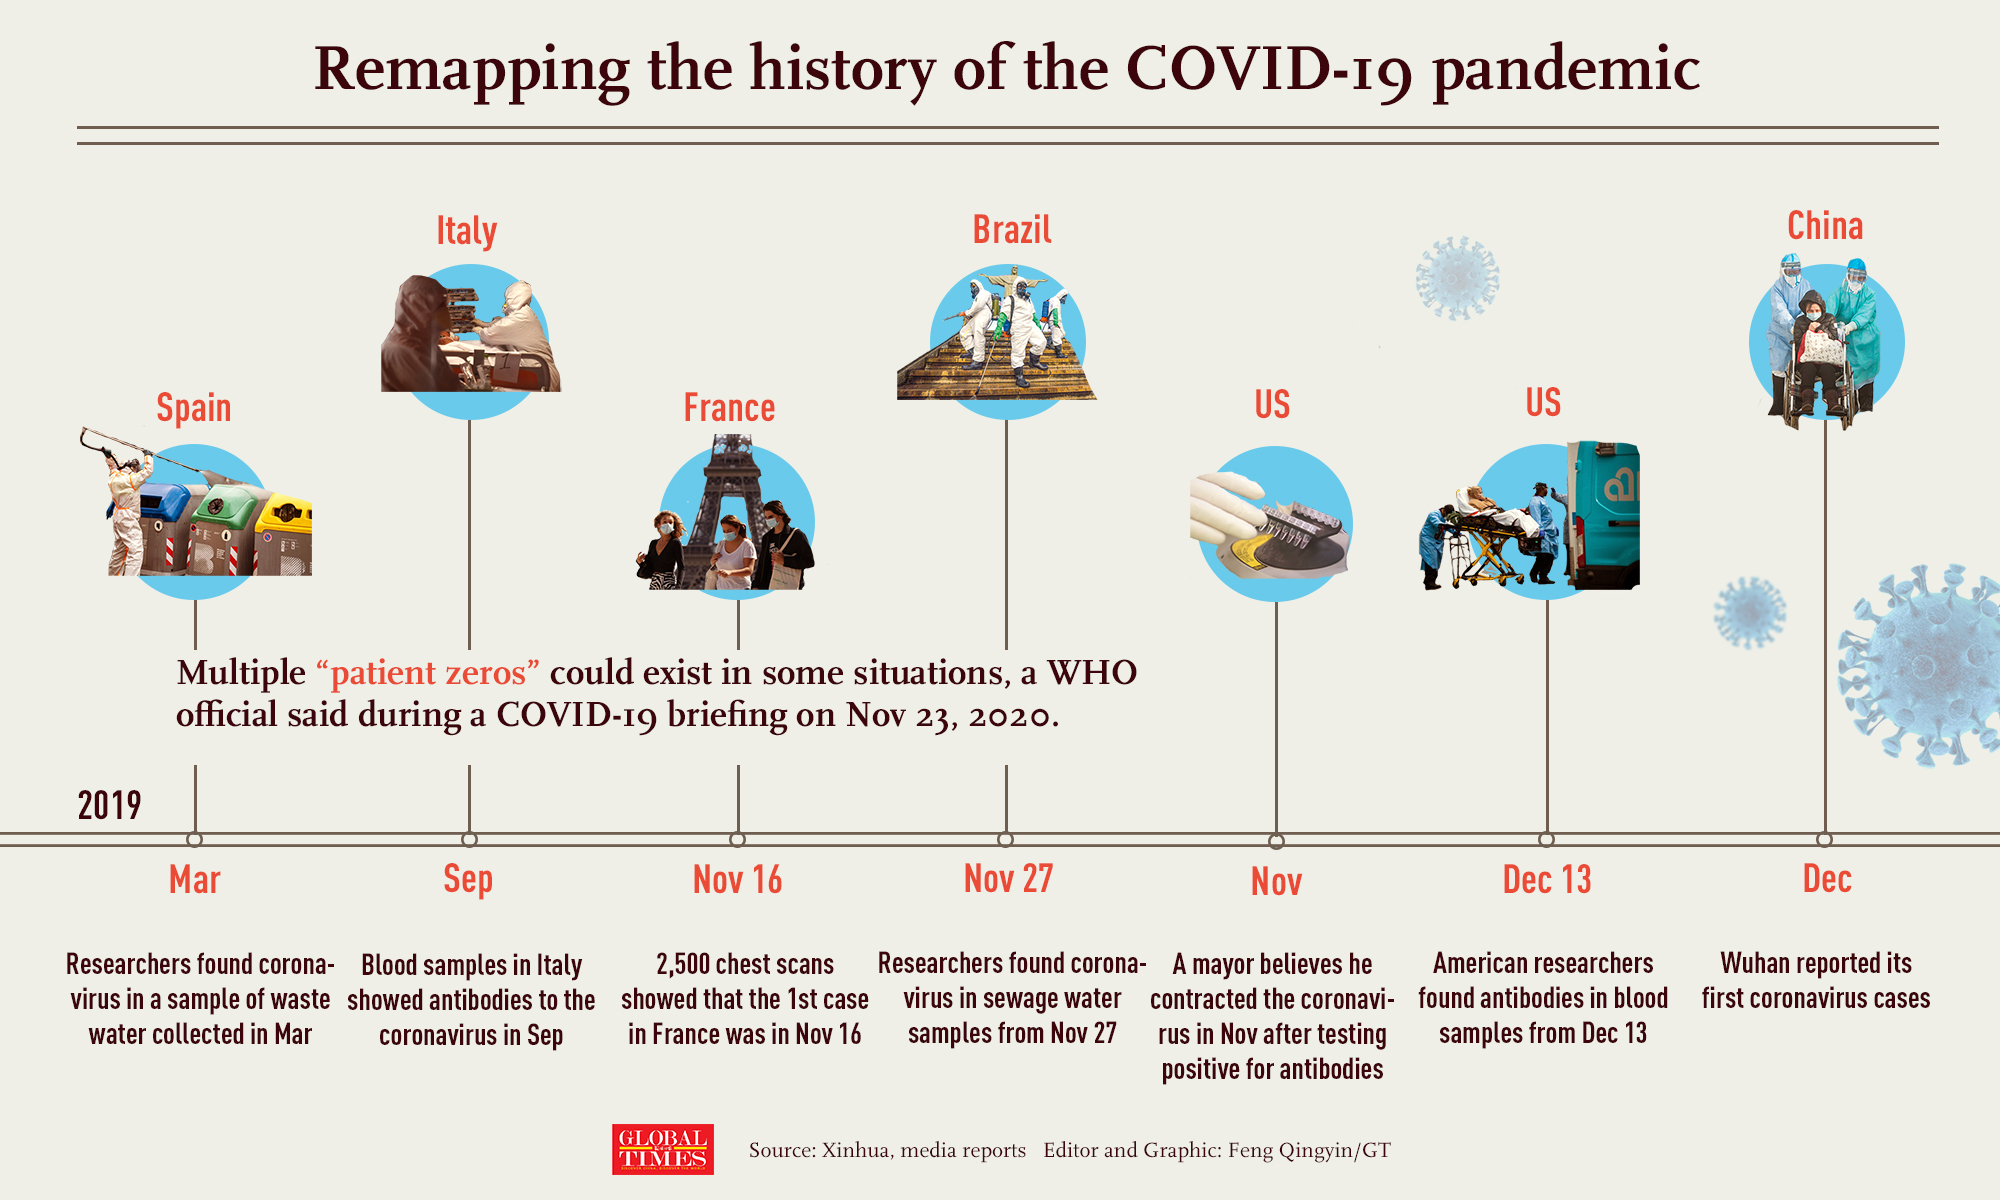 A recent US CDC report found COVID-19 antibodies in blood samples as early as Dec 13, 2019. With more & more evidence surfacing about the coronavirus' origins in places outside China before Wuhan detected it, the world is remapping the history of the COVID-19 pandemic. Infographic:GT